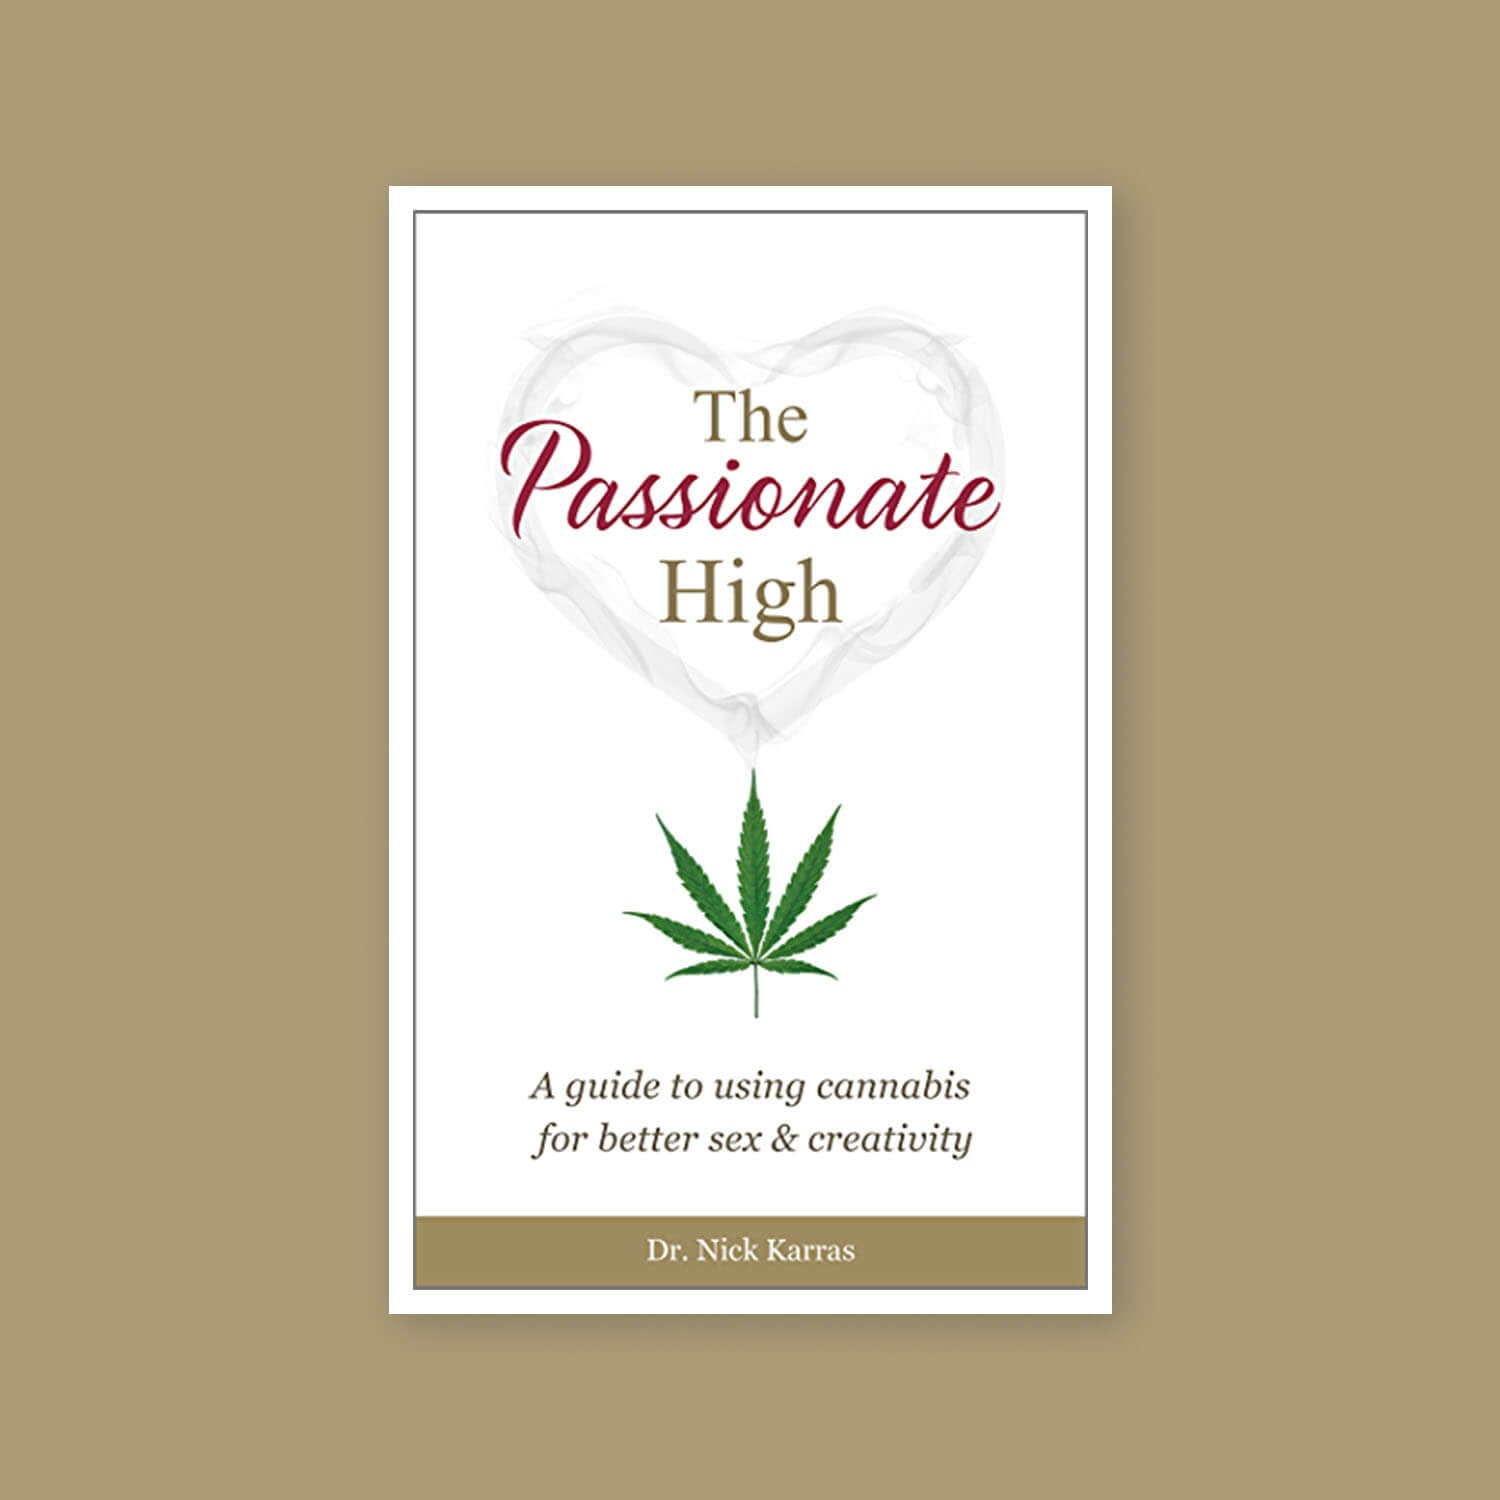 The Passionate High